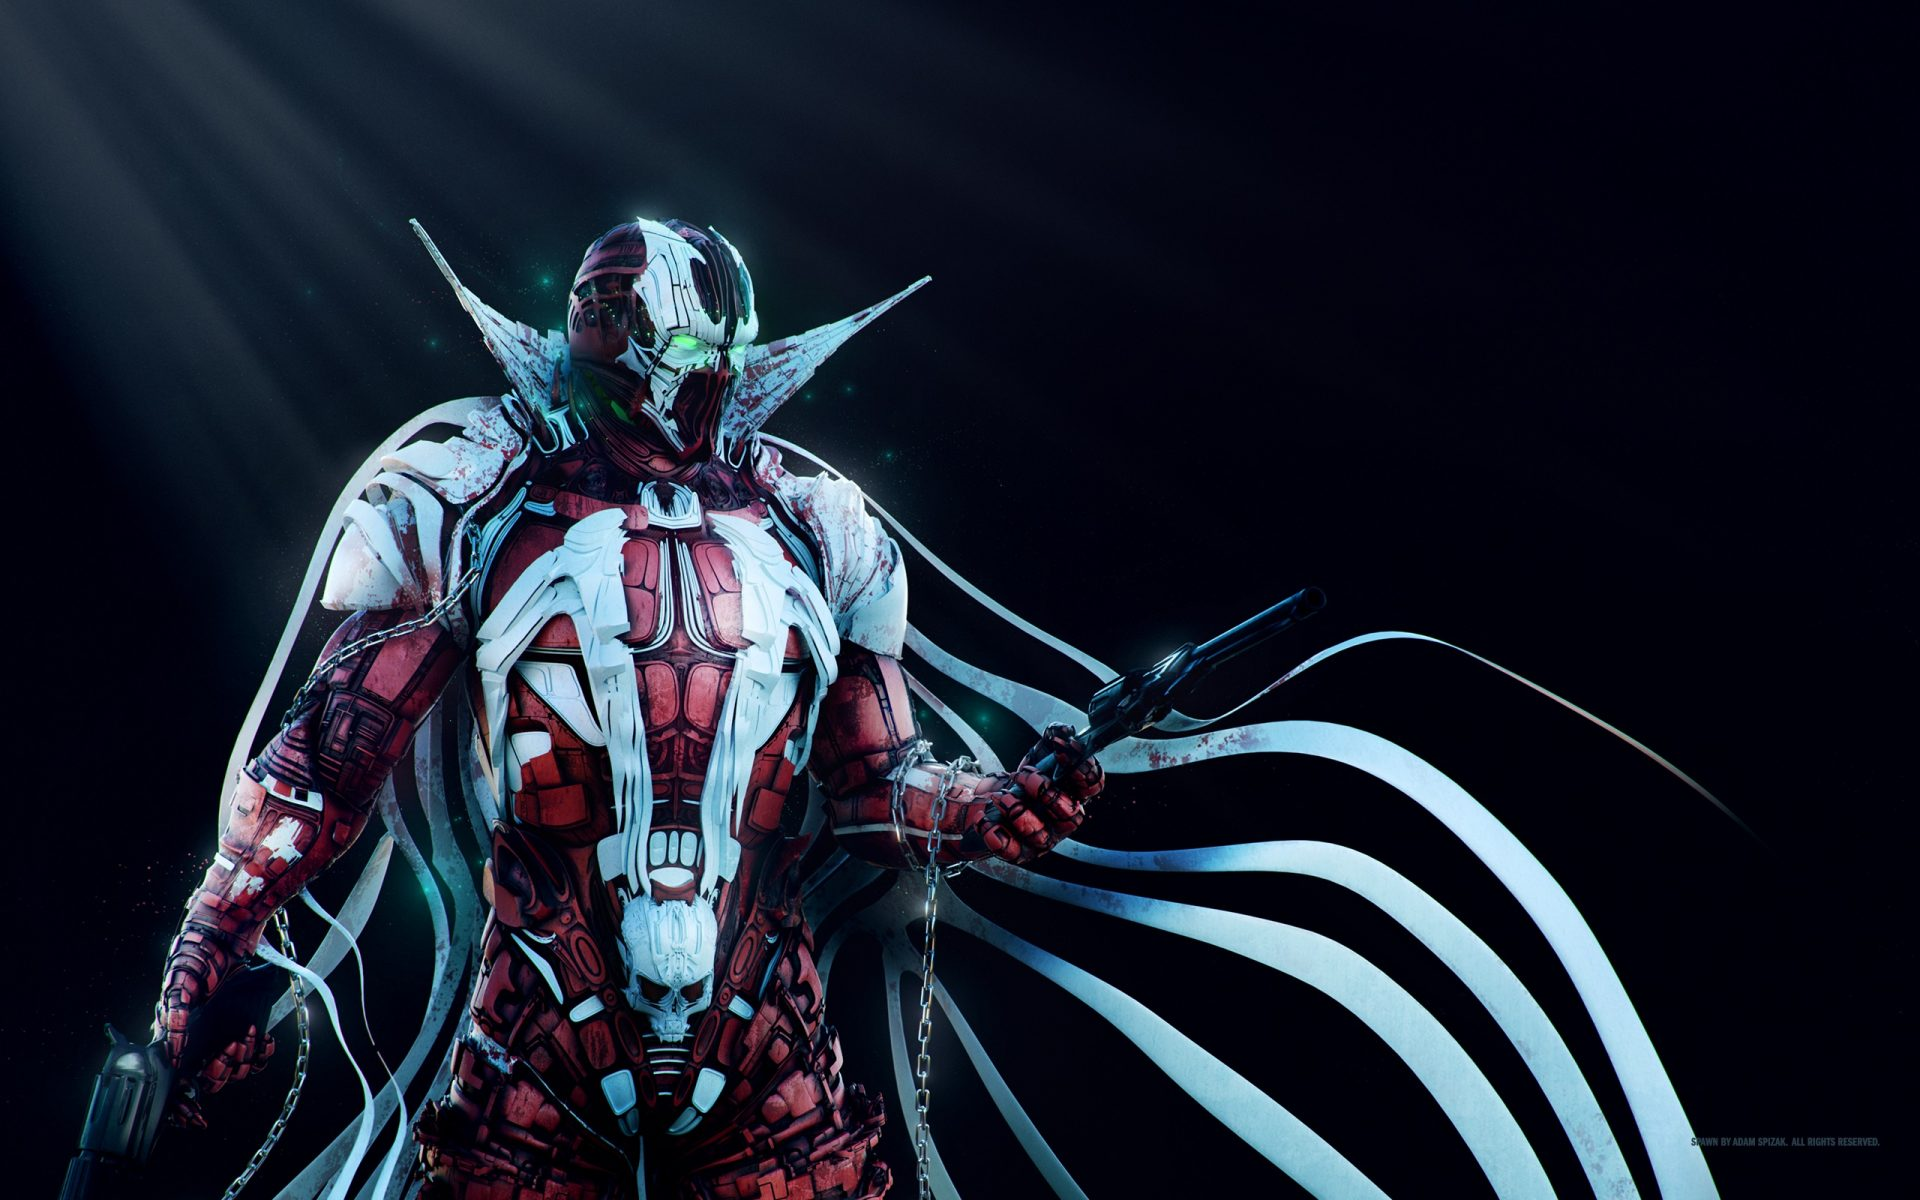 Spawn wallpaper background hd wallpaper background mobile wvga 240x400 480x800 400x240 smartphone 169 540x960 720x1280 iphone 5 s 640x1136 iphone 6 s 750x1334 spawn wallpaper voltagebd Images